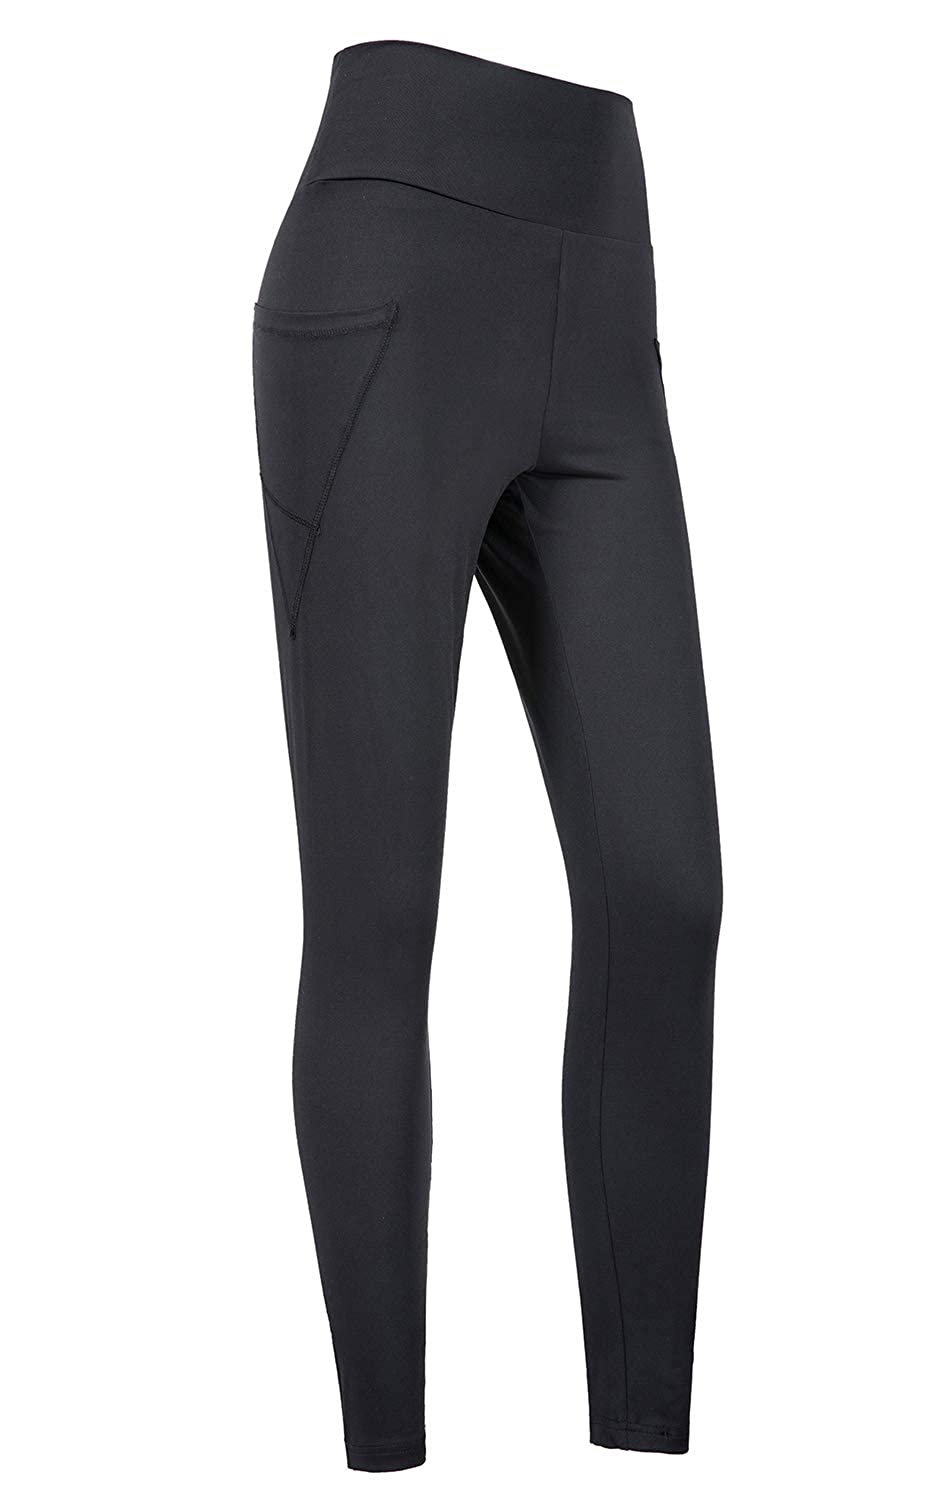 Sviuse Women Yoga Pants High-Waist Tummy Control Workout Running 4 Way Stretch Leggings with Pockets